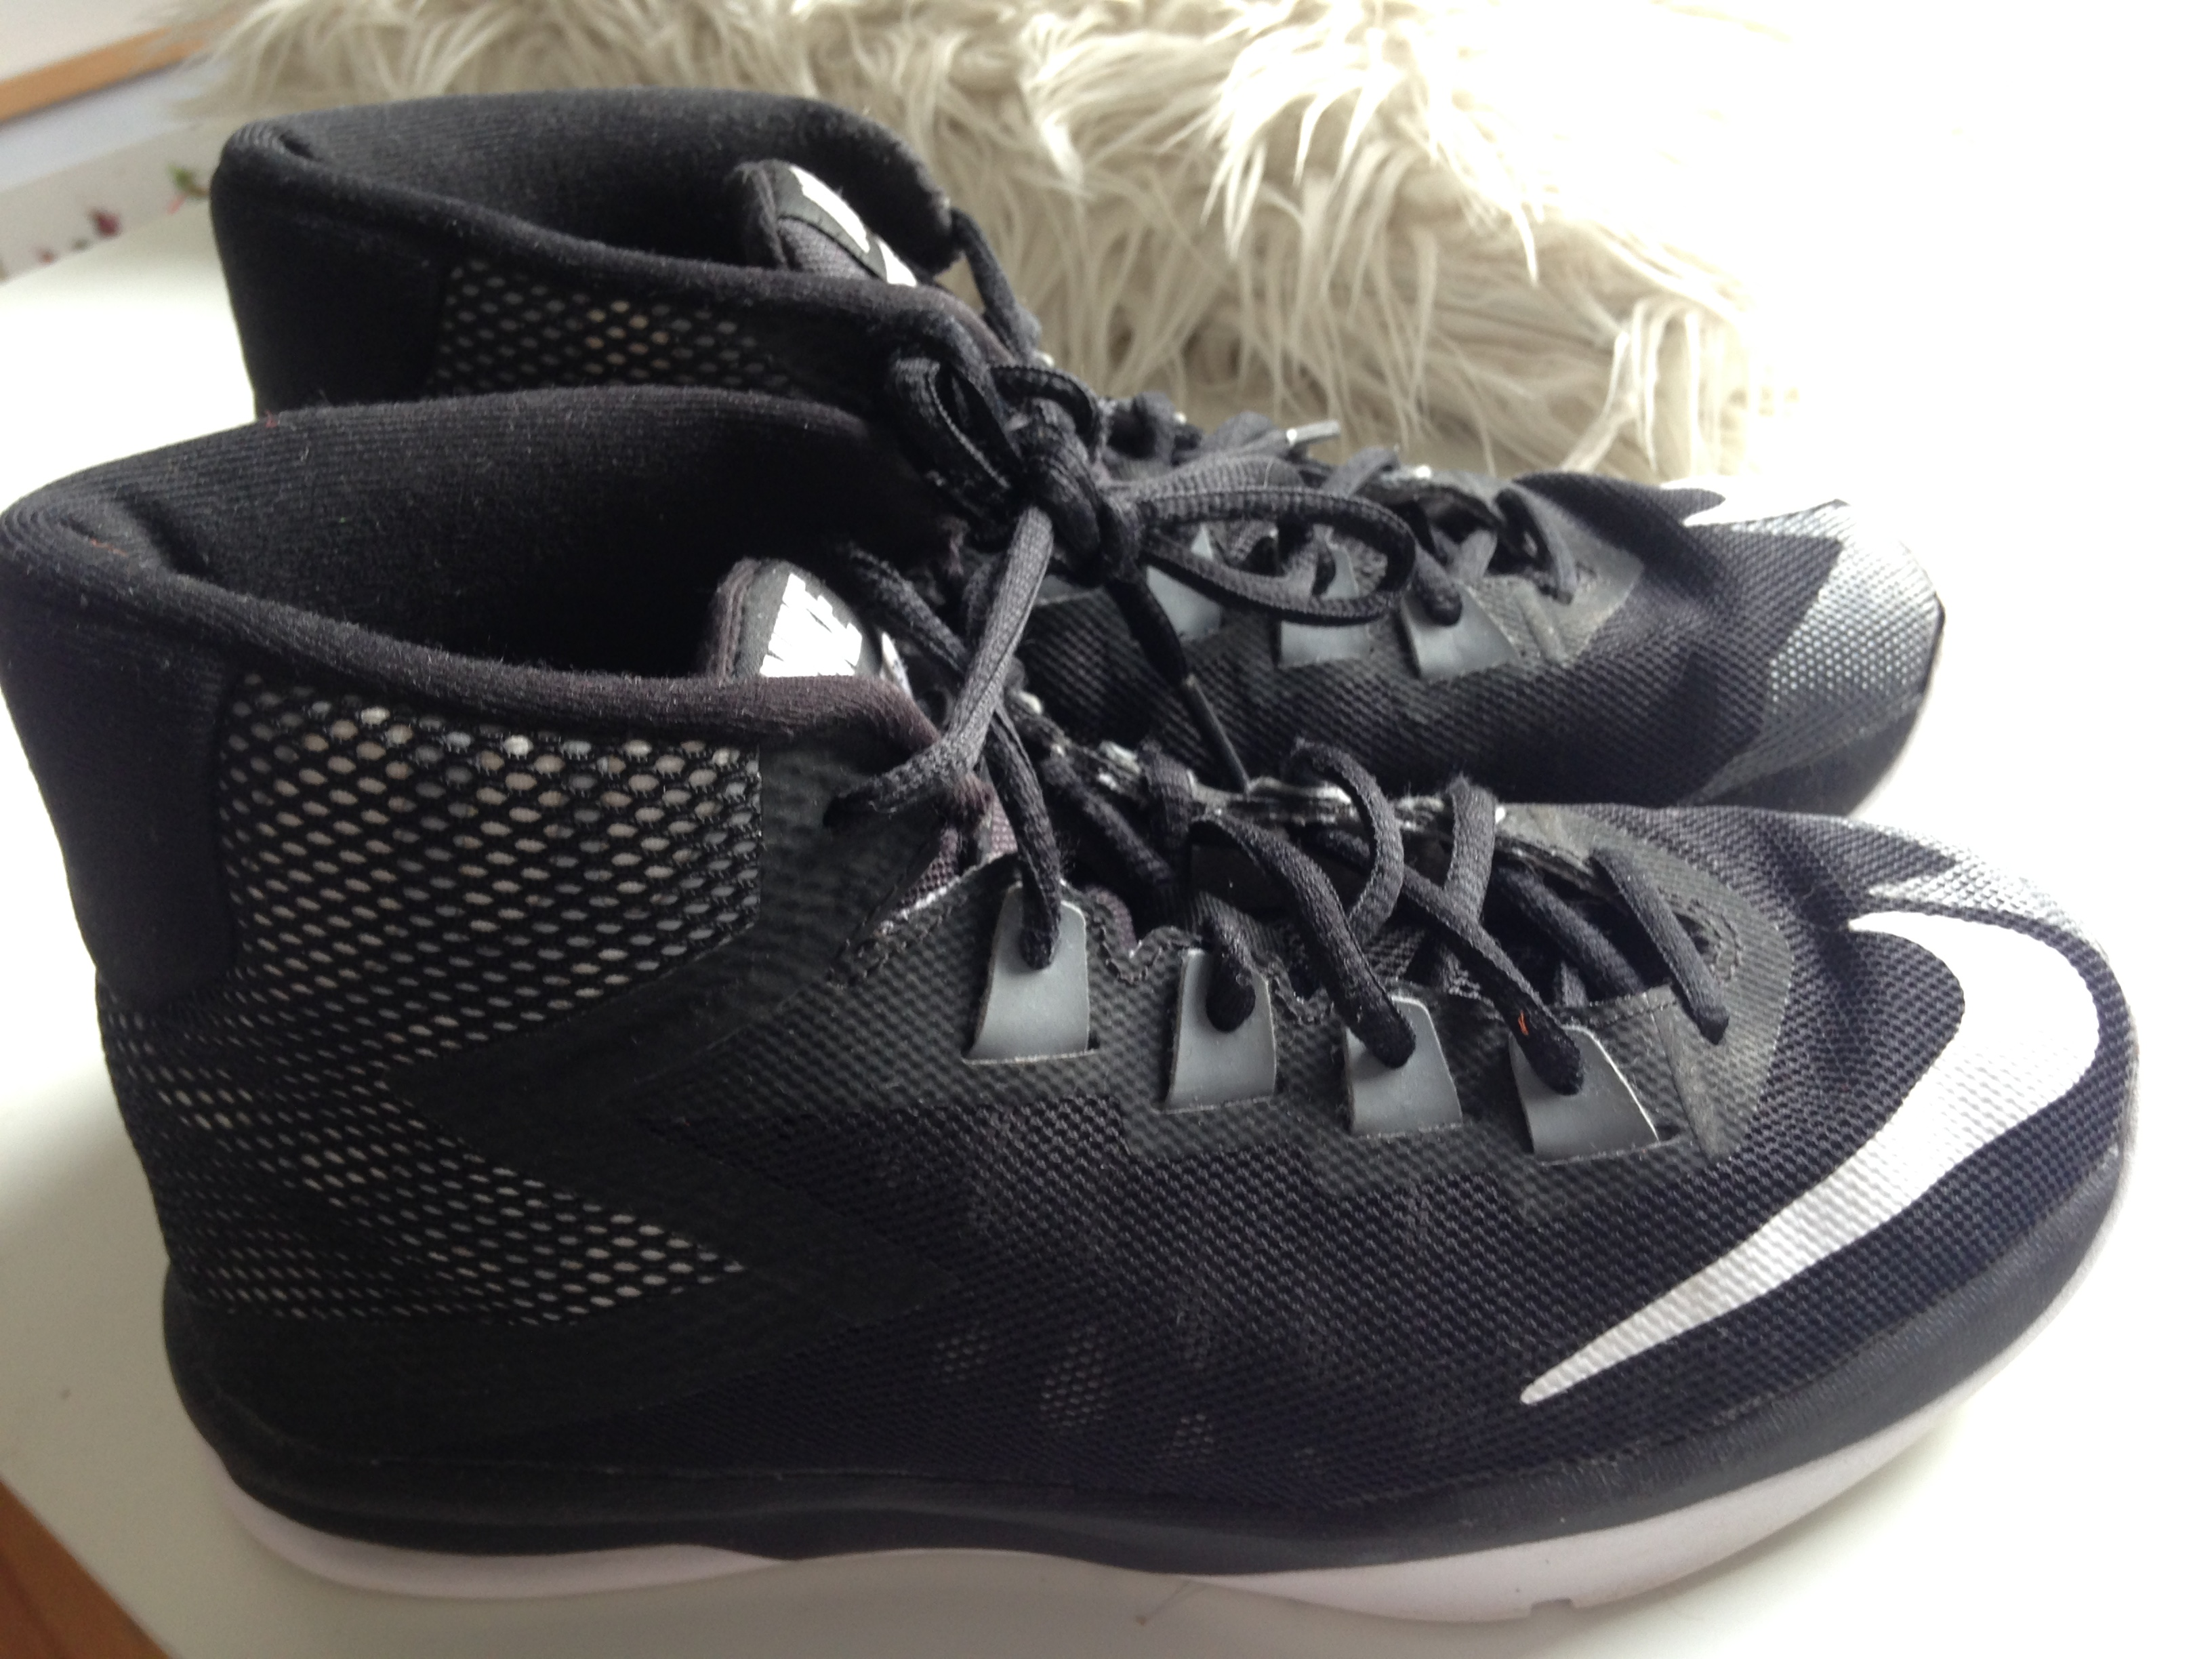 NIKE Air Devosion BASKETBALLSCHUHE